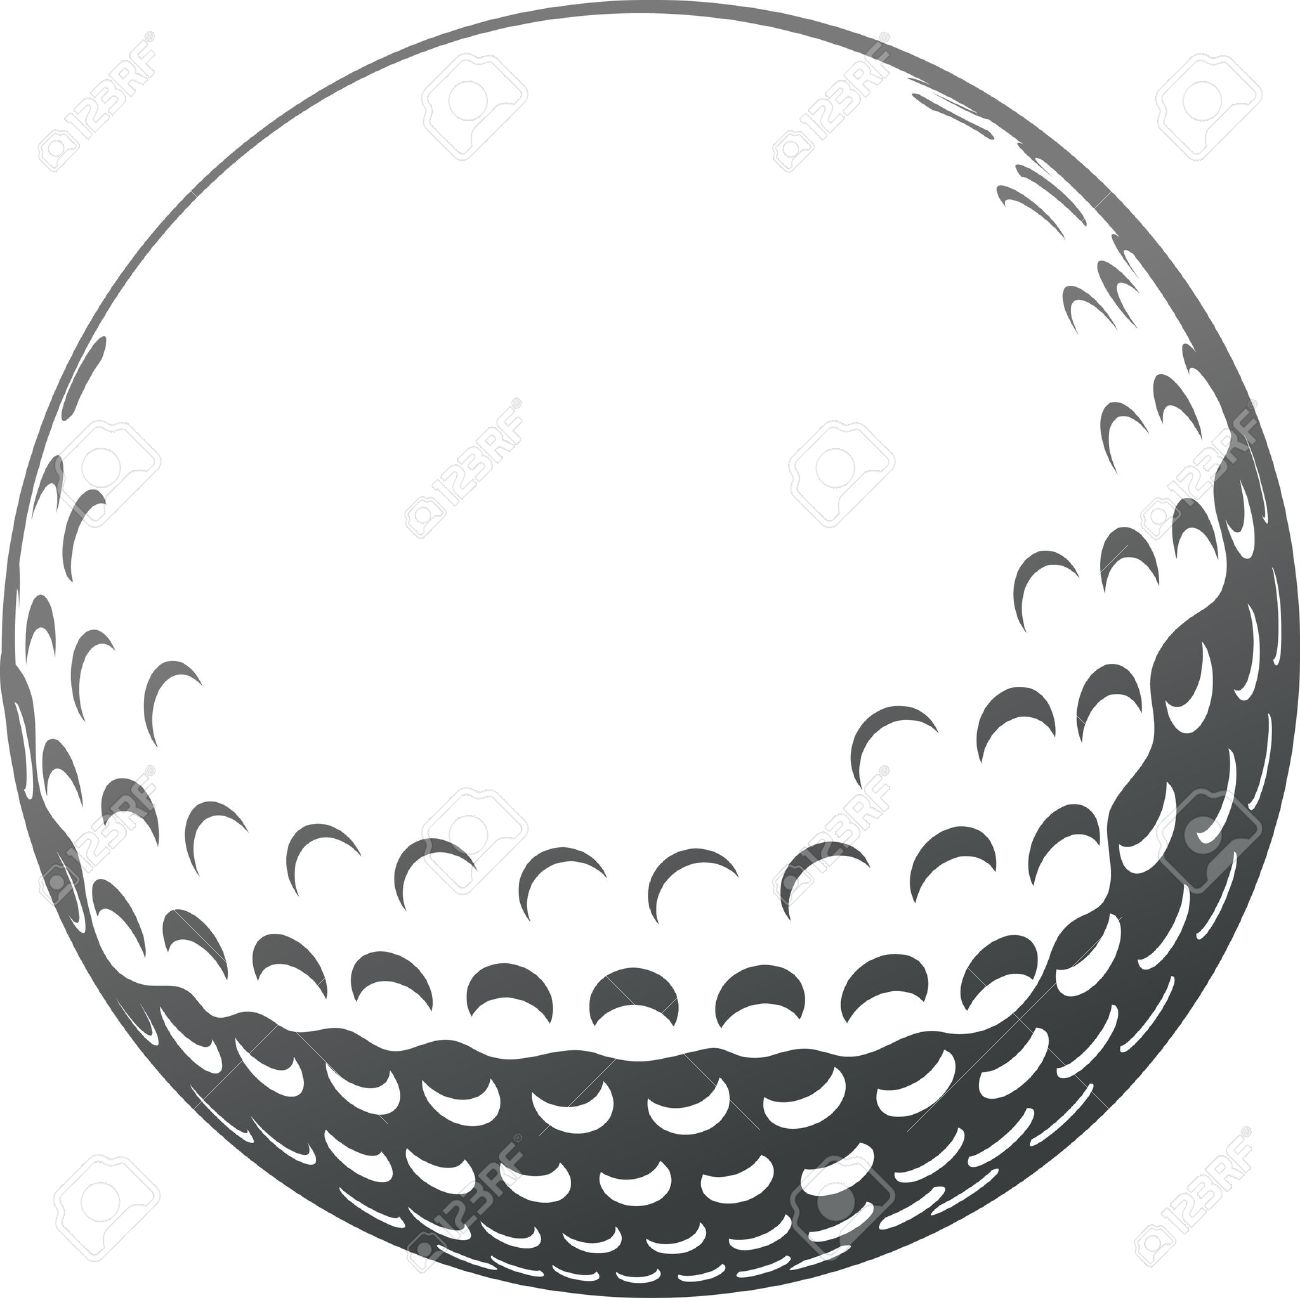 golf ball close up royalty free cliparts vectors and stock rh 123rf com Golf Ball Art Golf Ball Size